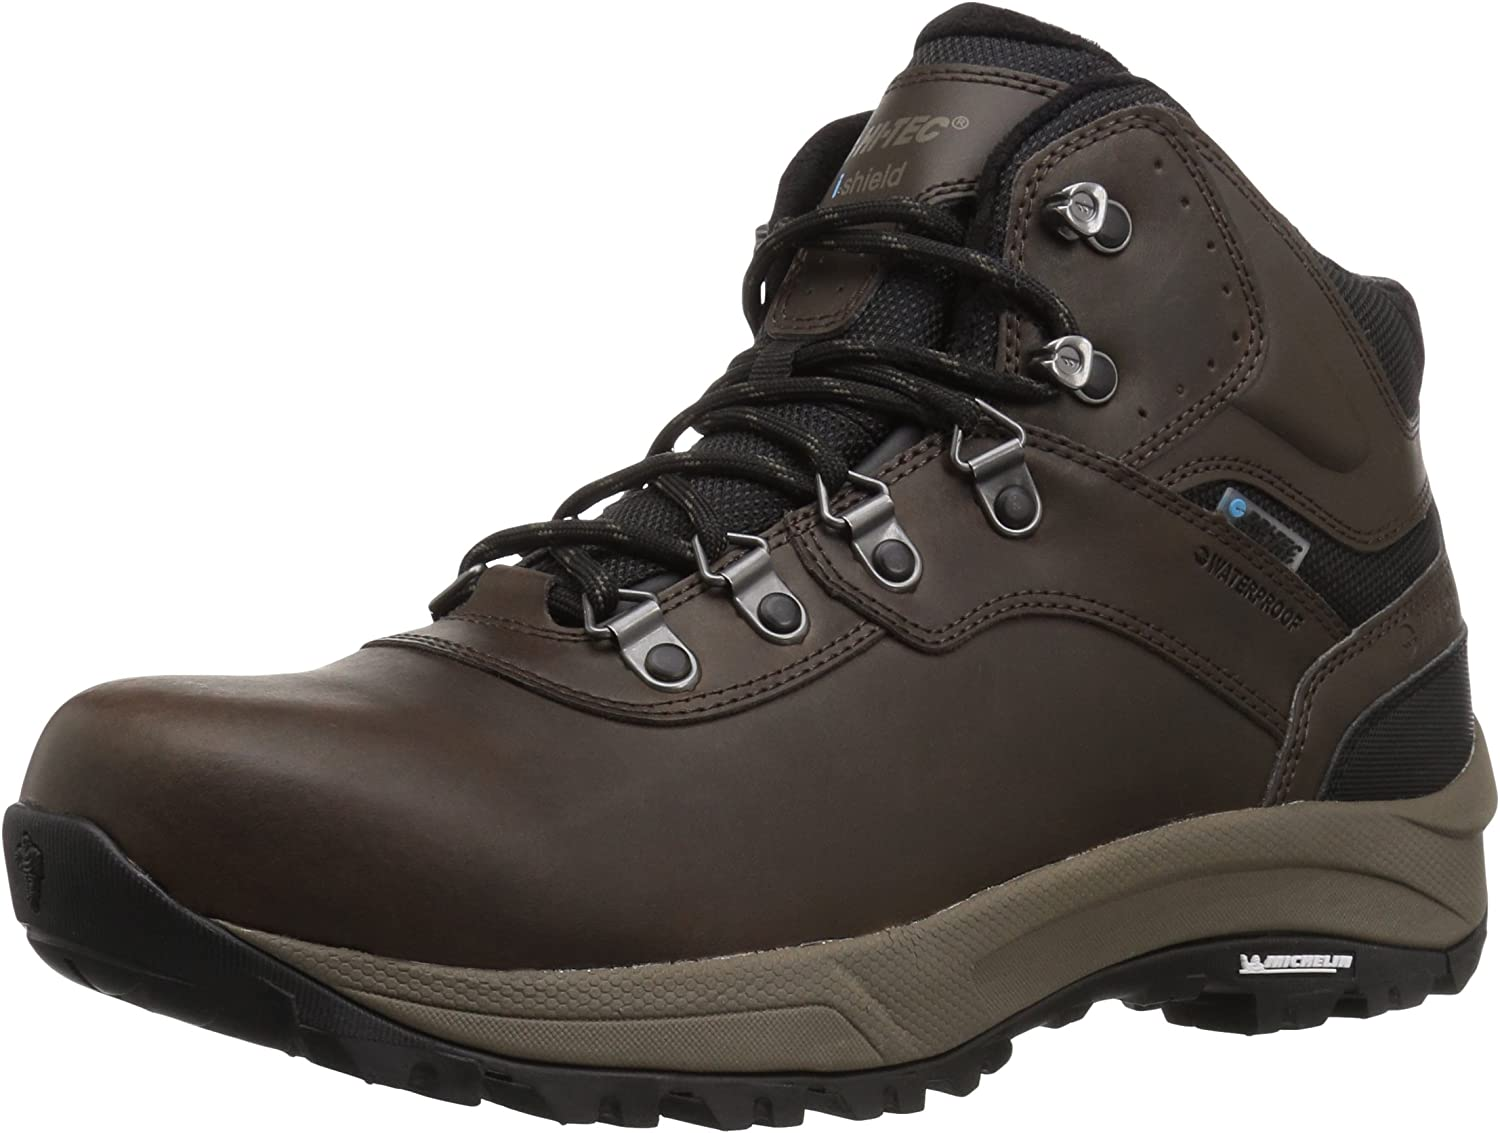 Hi-Tec Men s Altitude VI I Waterproof Wide Hiking Boot